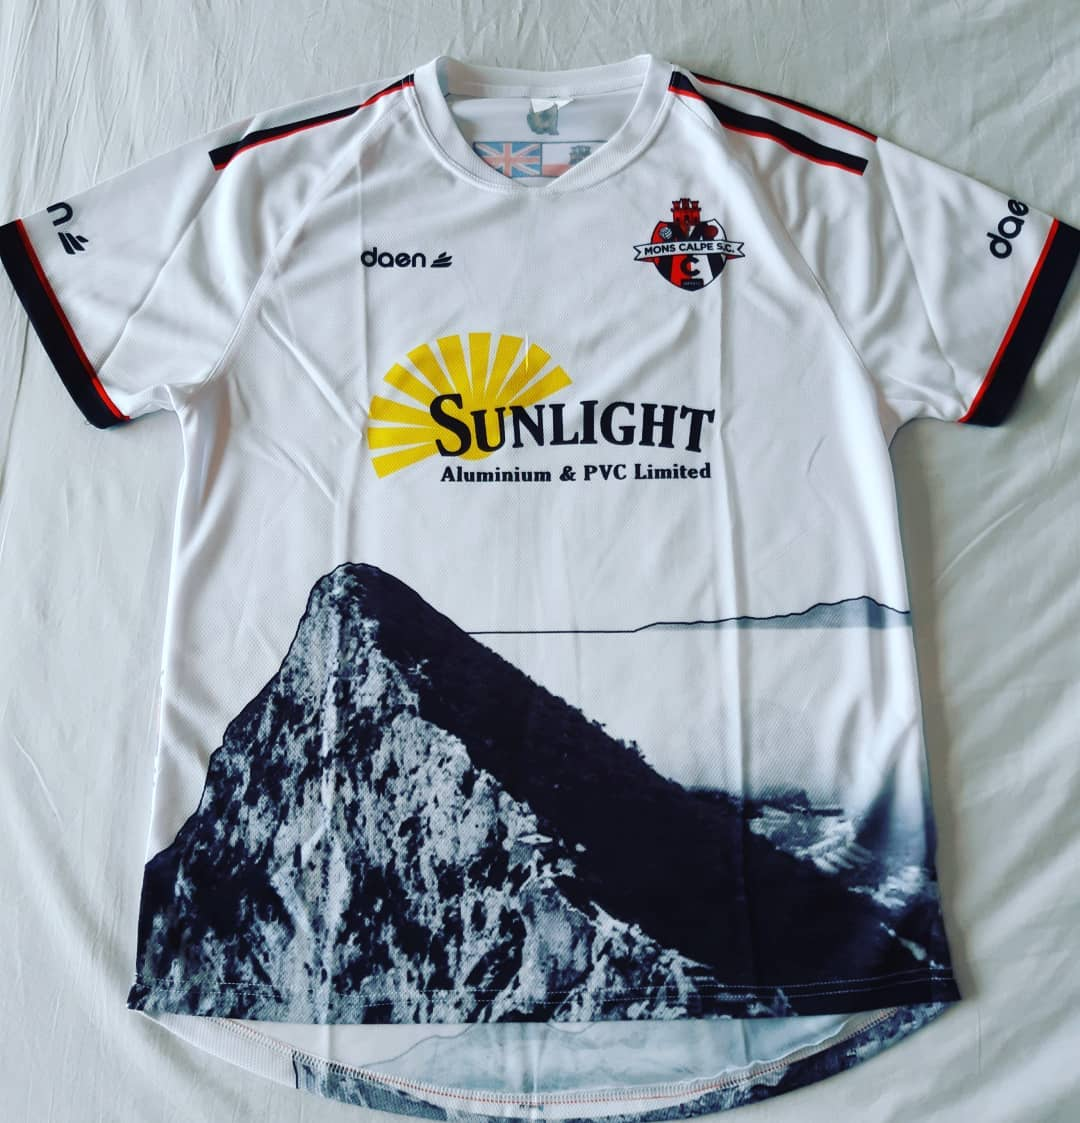 Mons Calpe S.C. Away 2015/2016 Football Shirt Manufactured By Daen. The club plays football in Gibraltar.